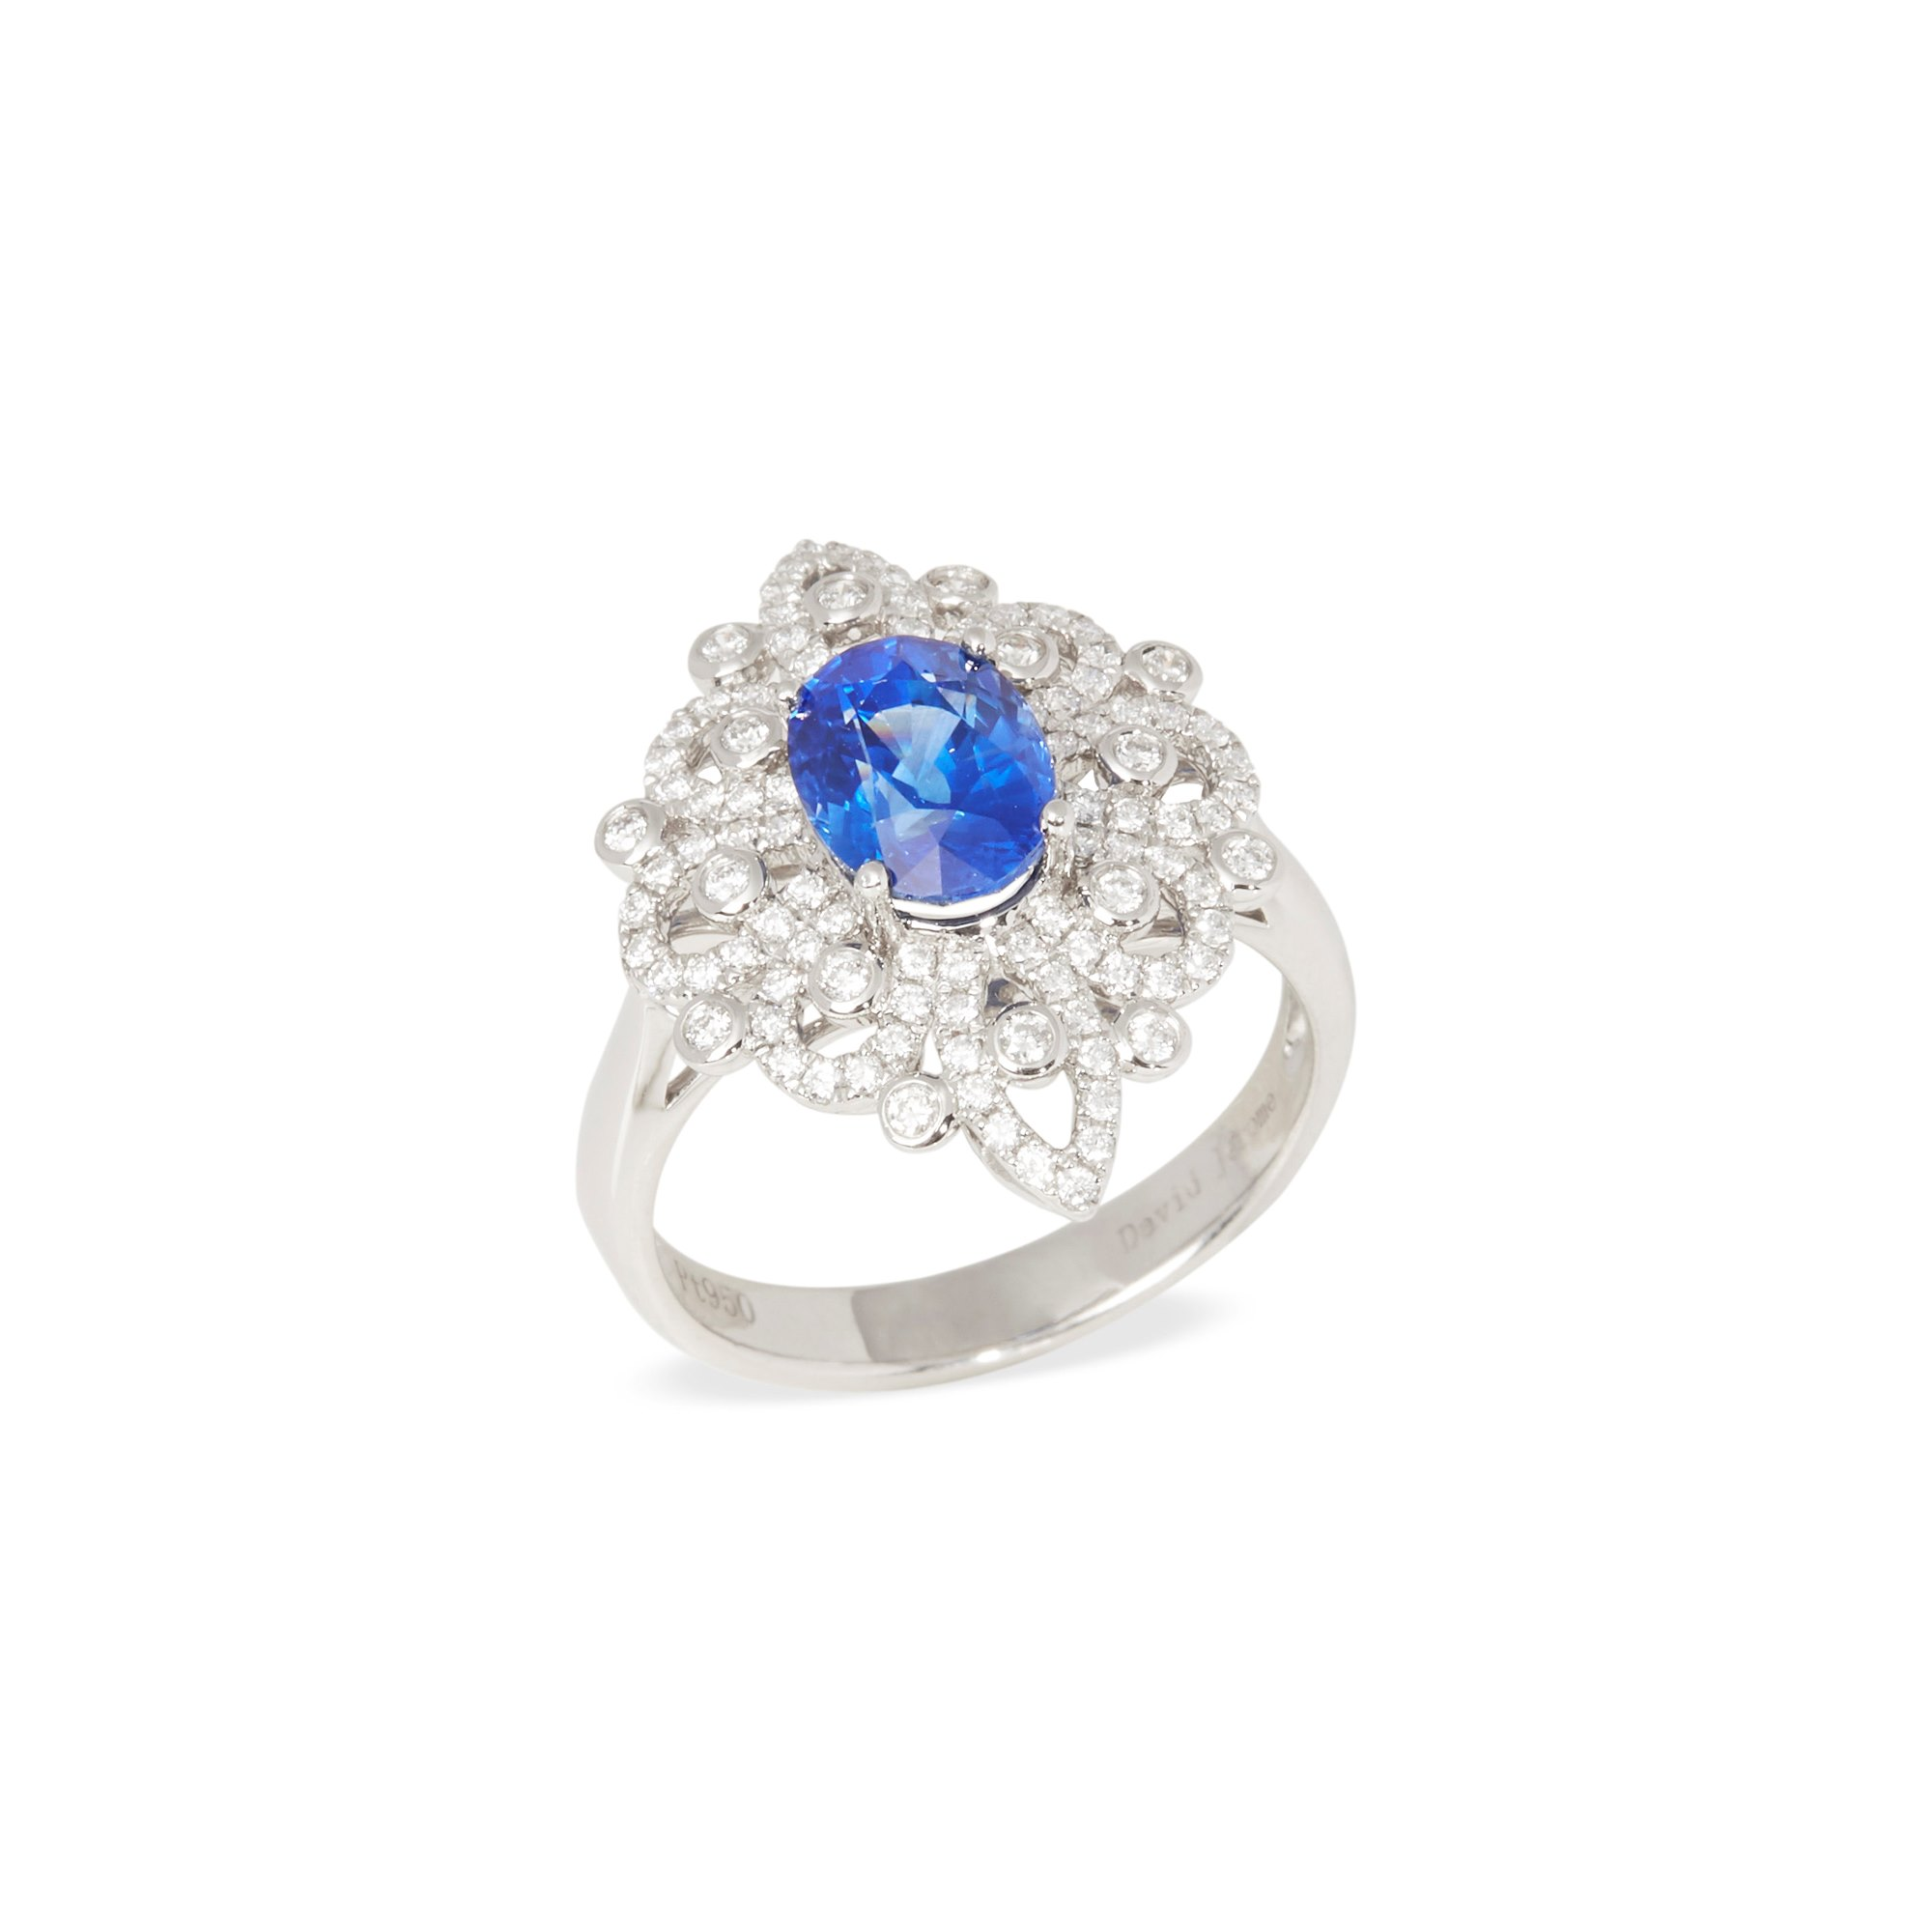 David Jerome Platinum Sapphire and Diamond Ring